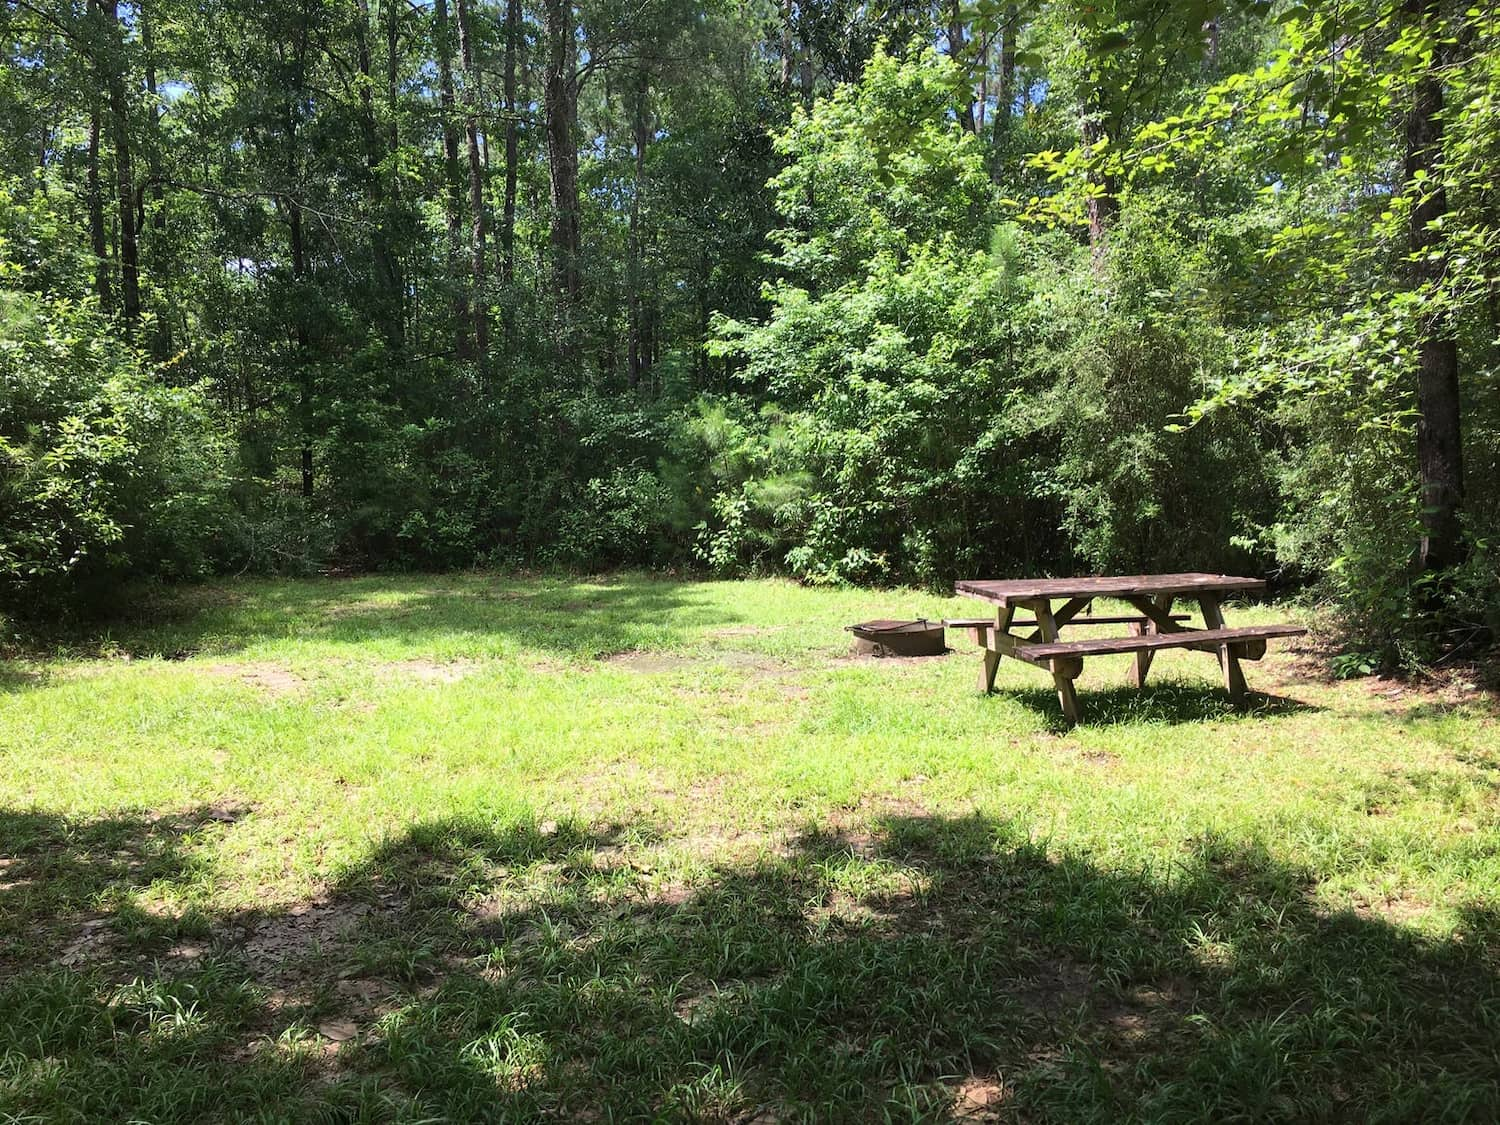 picnic table in forested field